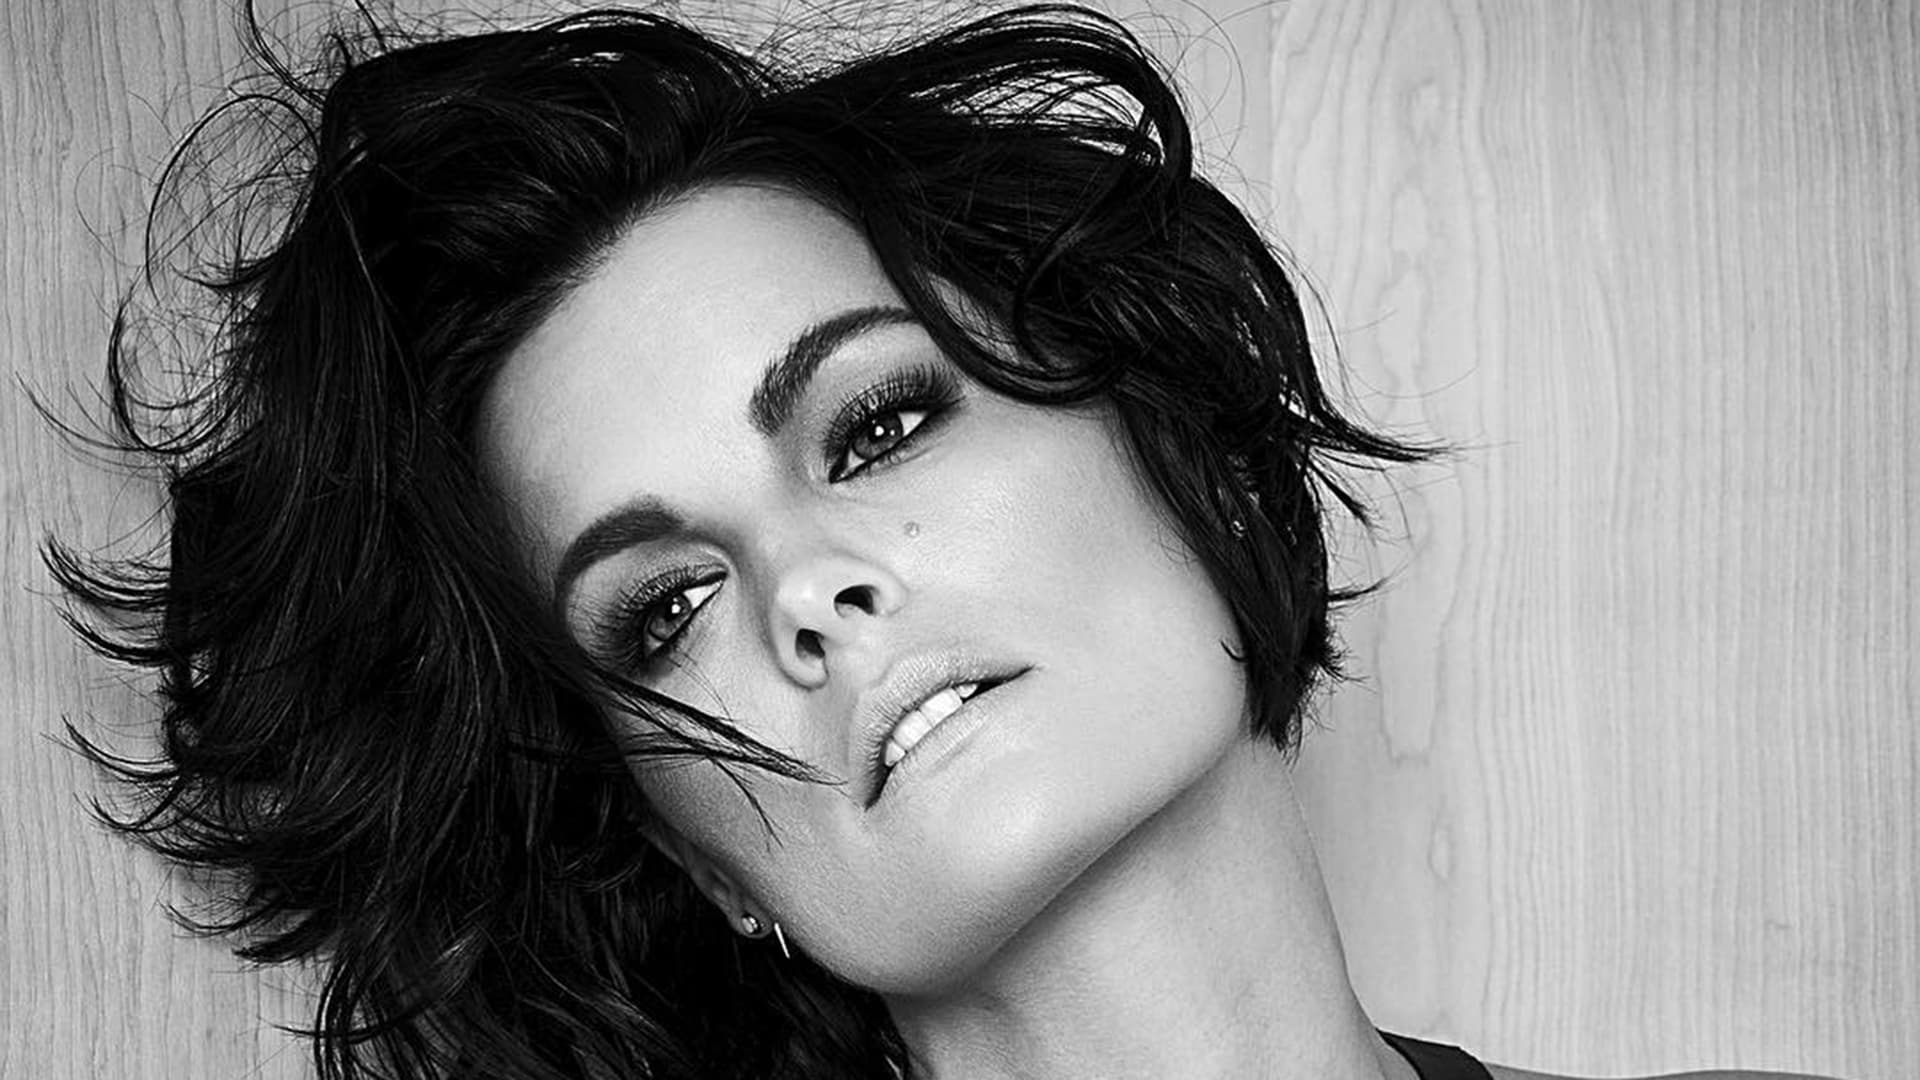 High Resolution Photo 16+ Jaimie Alexander Wallpapers Hd High Quality Resolution